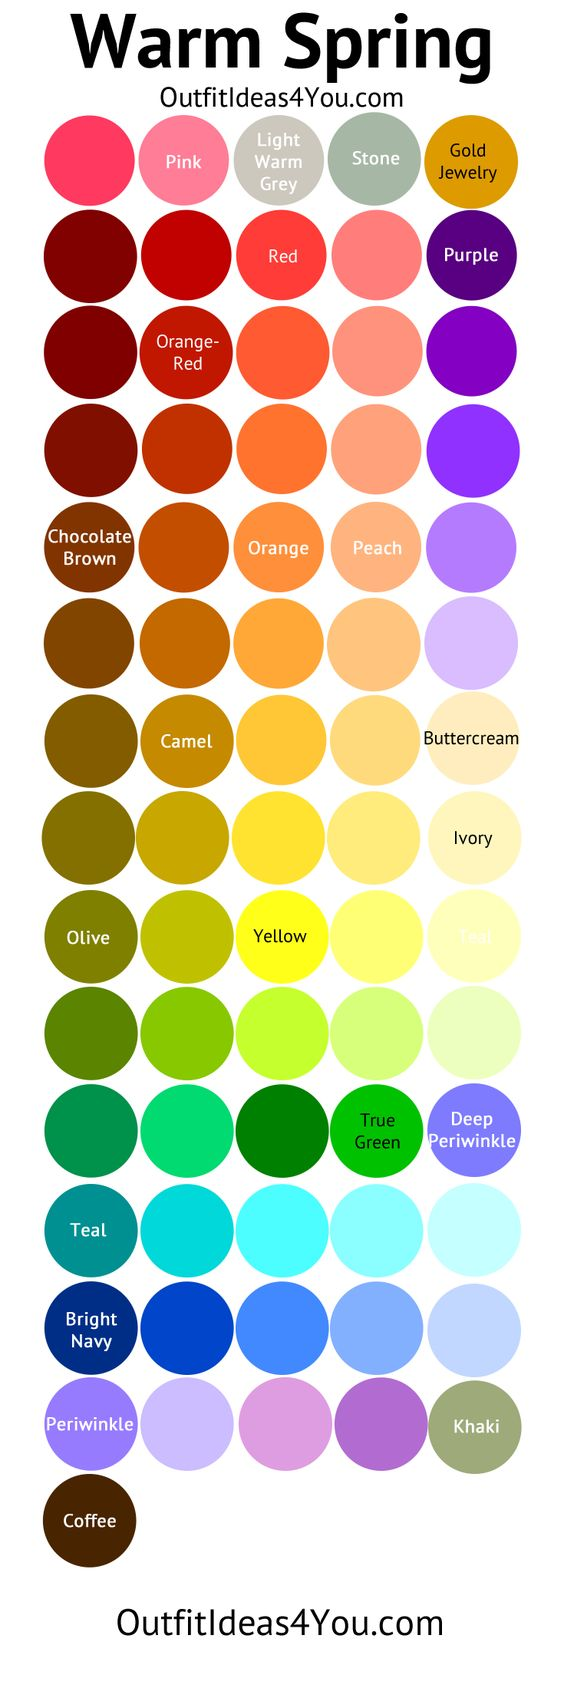 I never paid much attention to this, but apparently I should! I'm a warm spring, no wonder I like so many of these colors. They can be hard to find :)